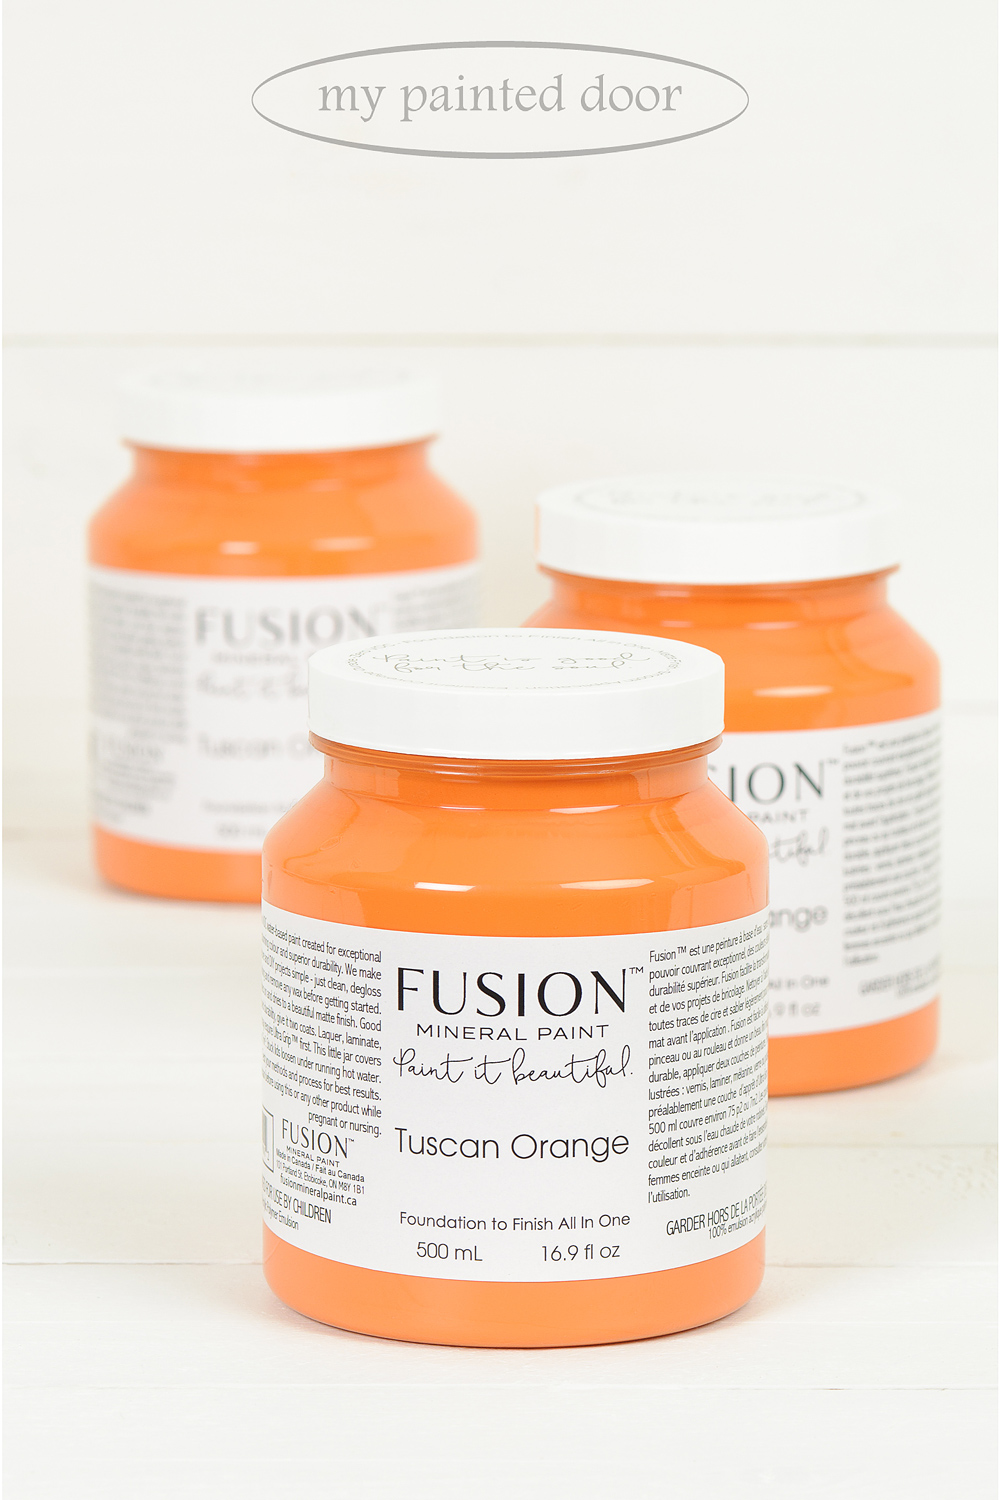 New Fusion Mineral Paint colours!